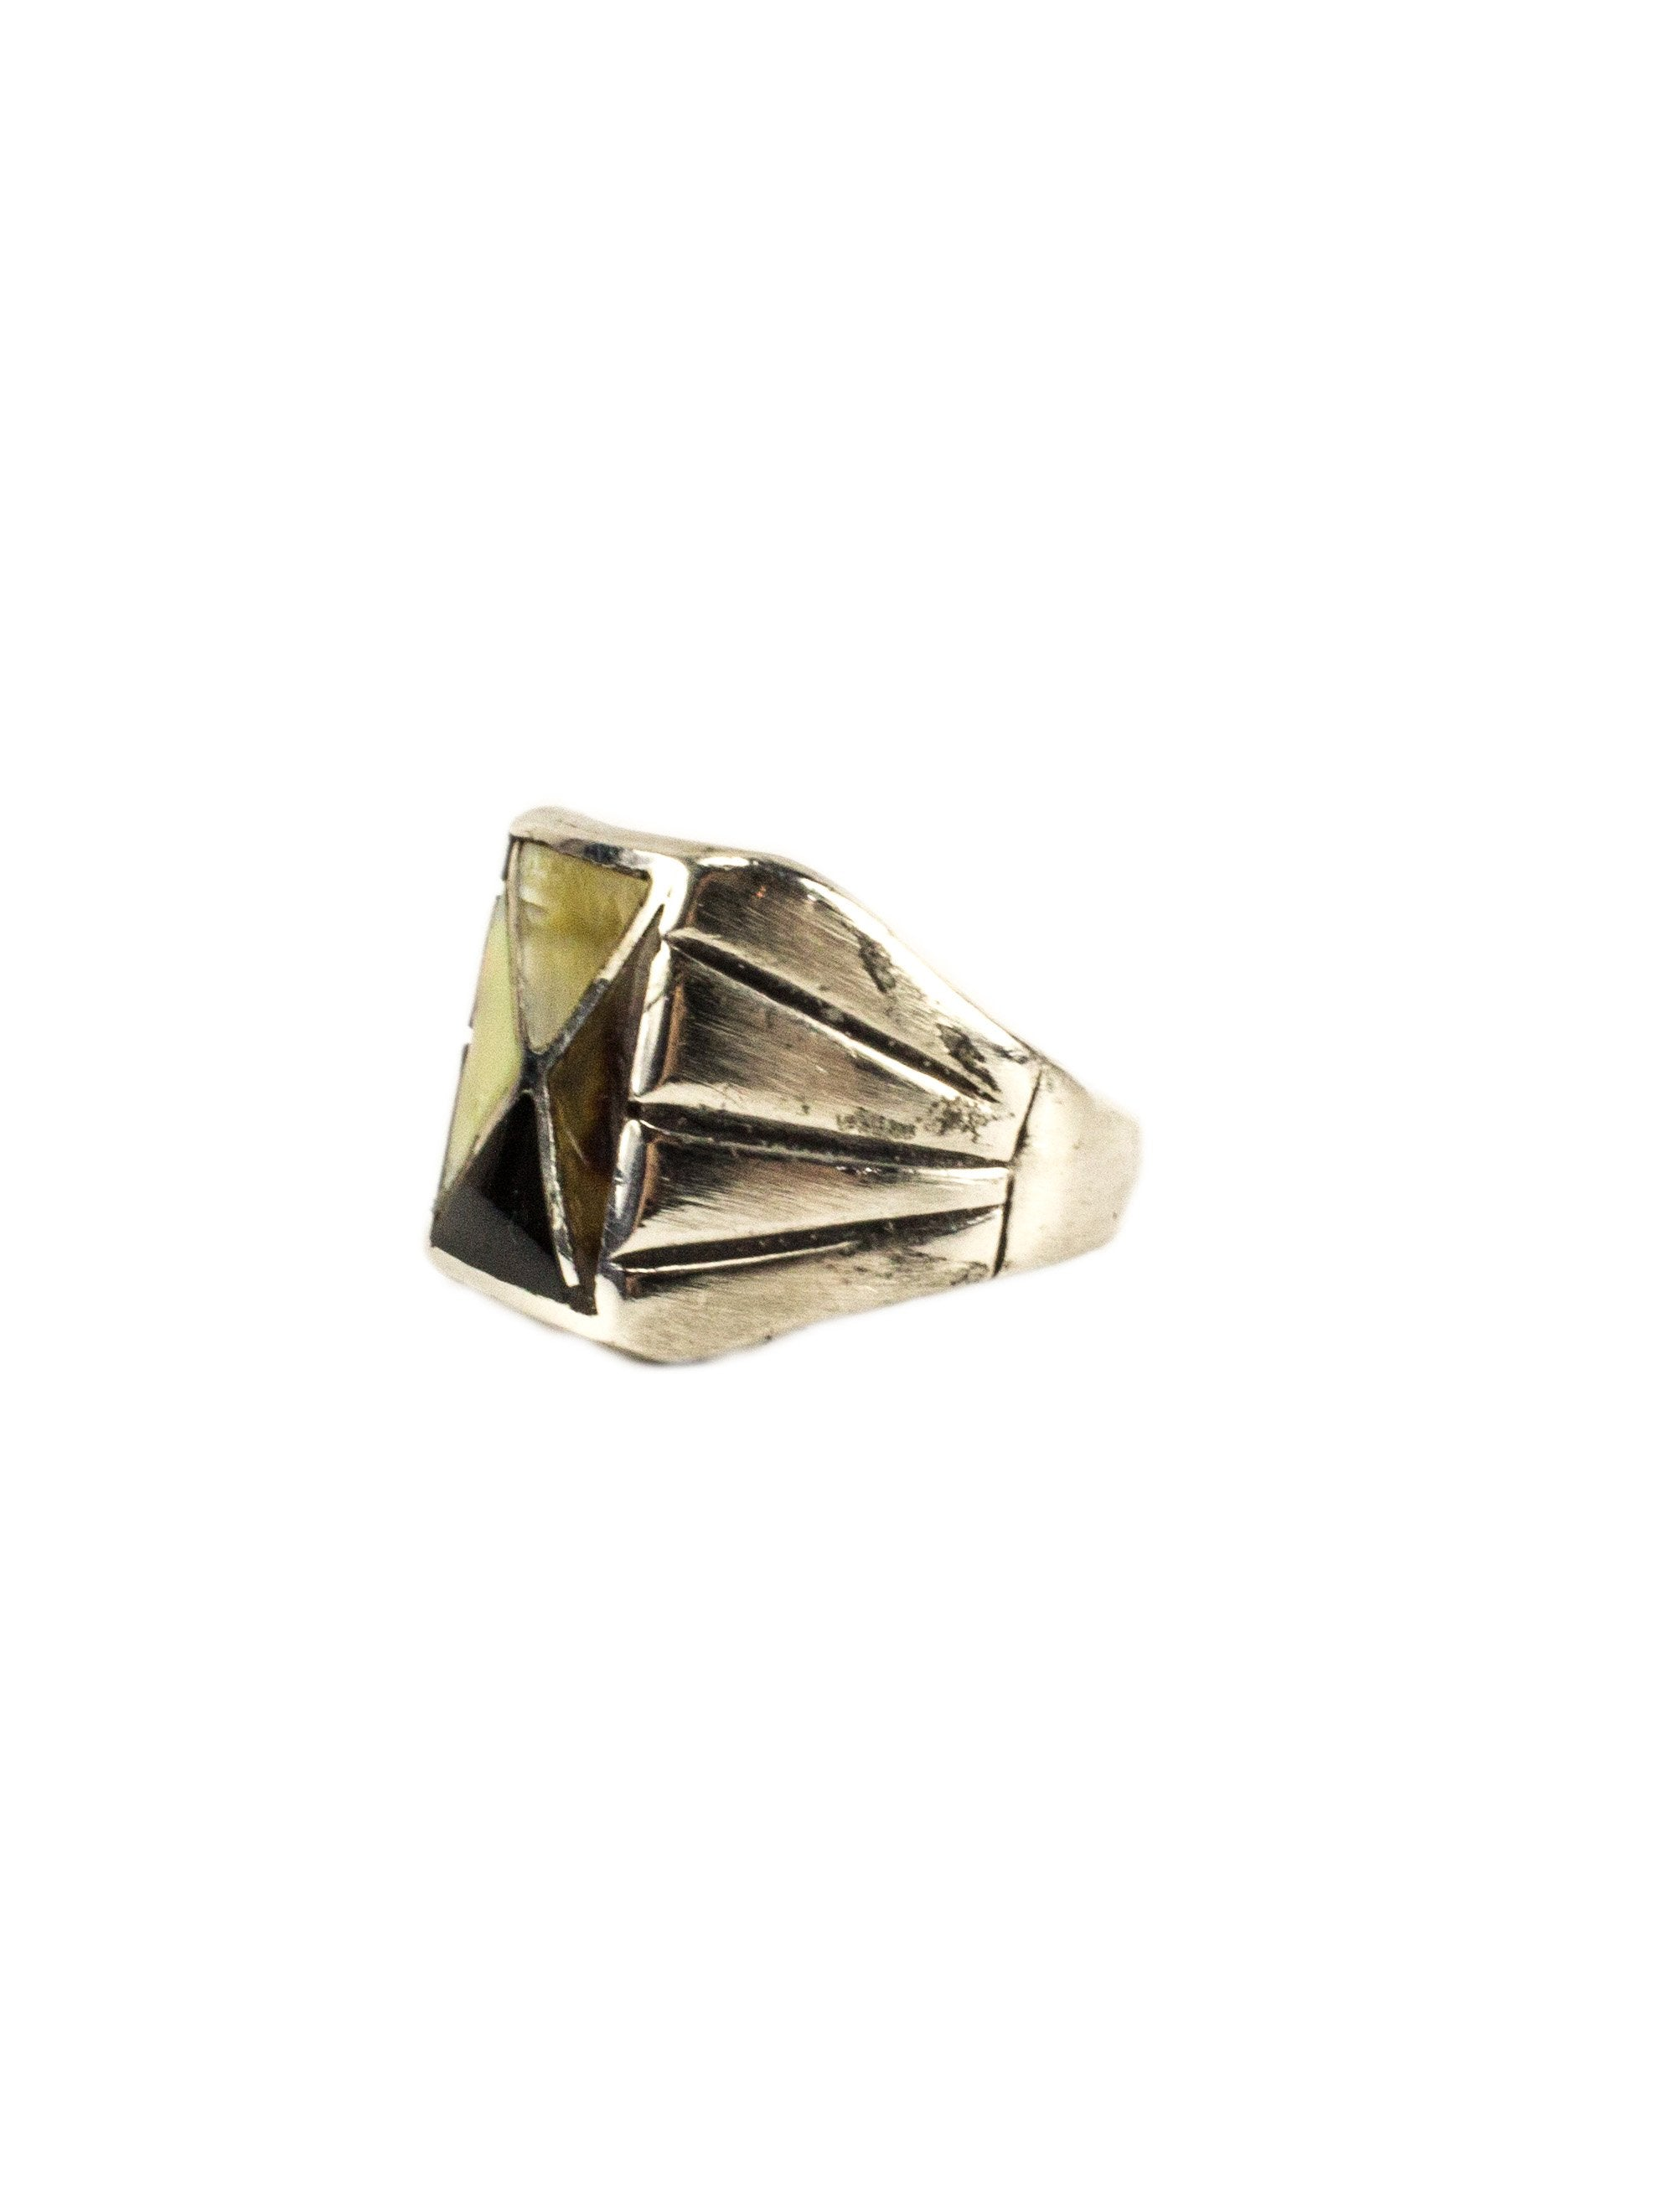 Vintage 1950's Zuni Sterling Silver Mens Ring